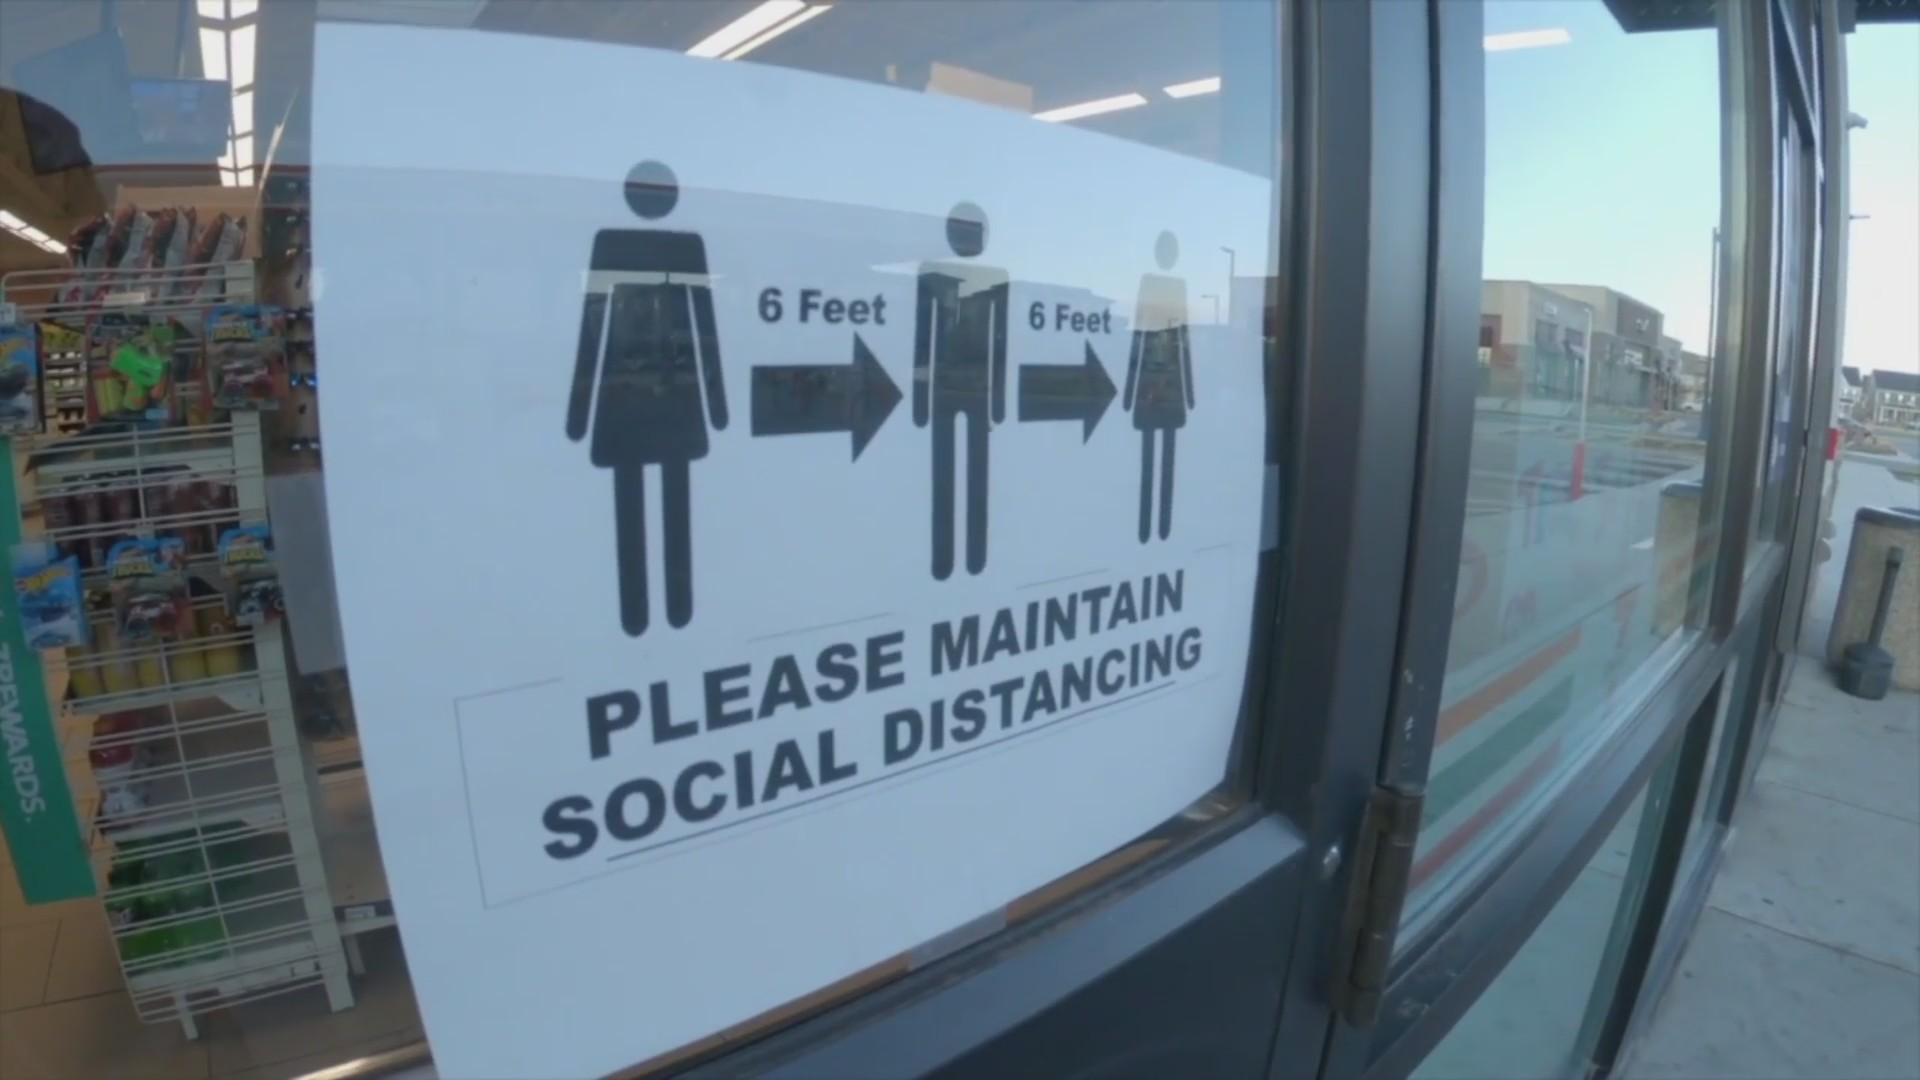 A sign reminds customers to social distance.